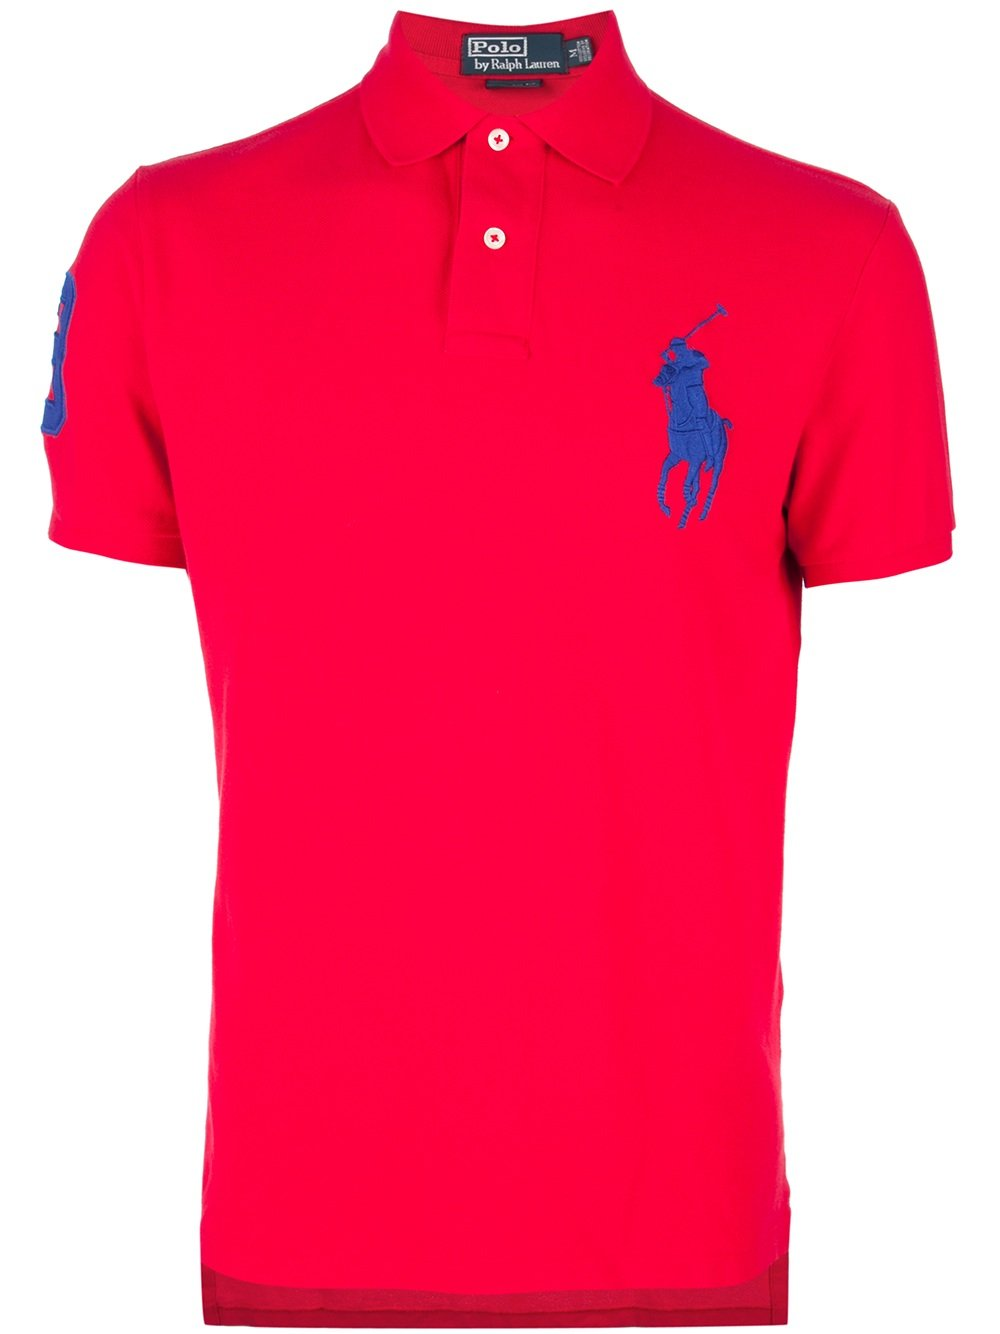 polo ralph lauren polo shirt in red for men lyst. Black Bedroom Furniture Sets. Home Design Ideas